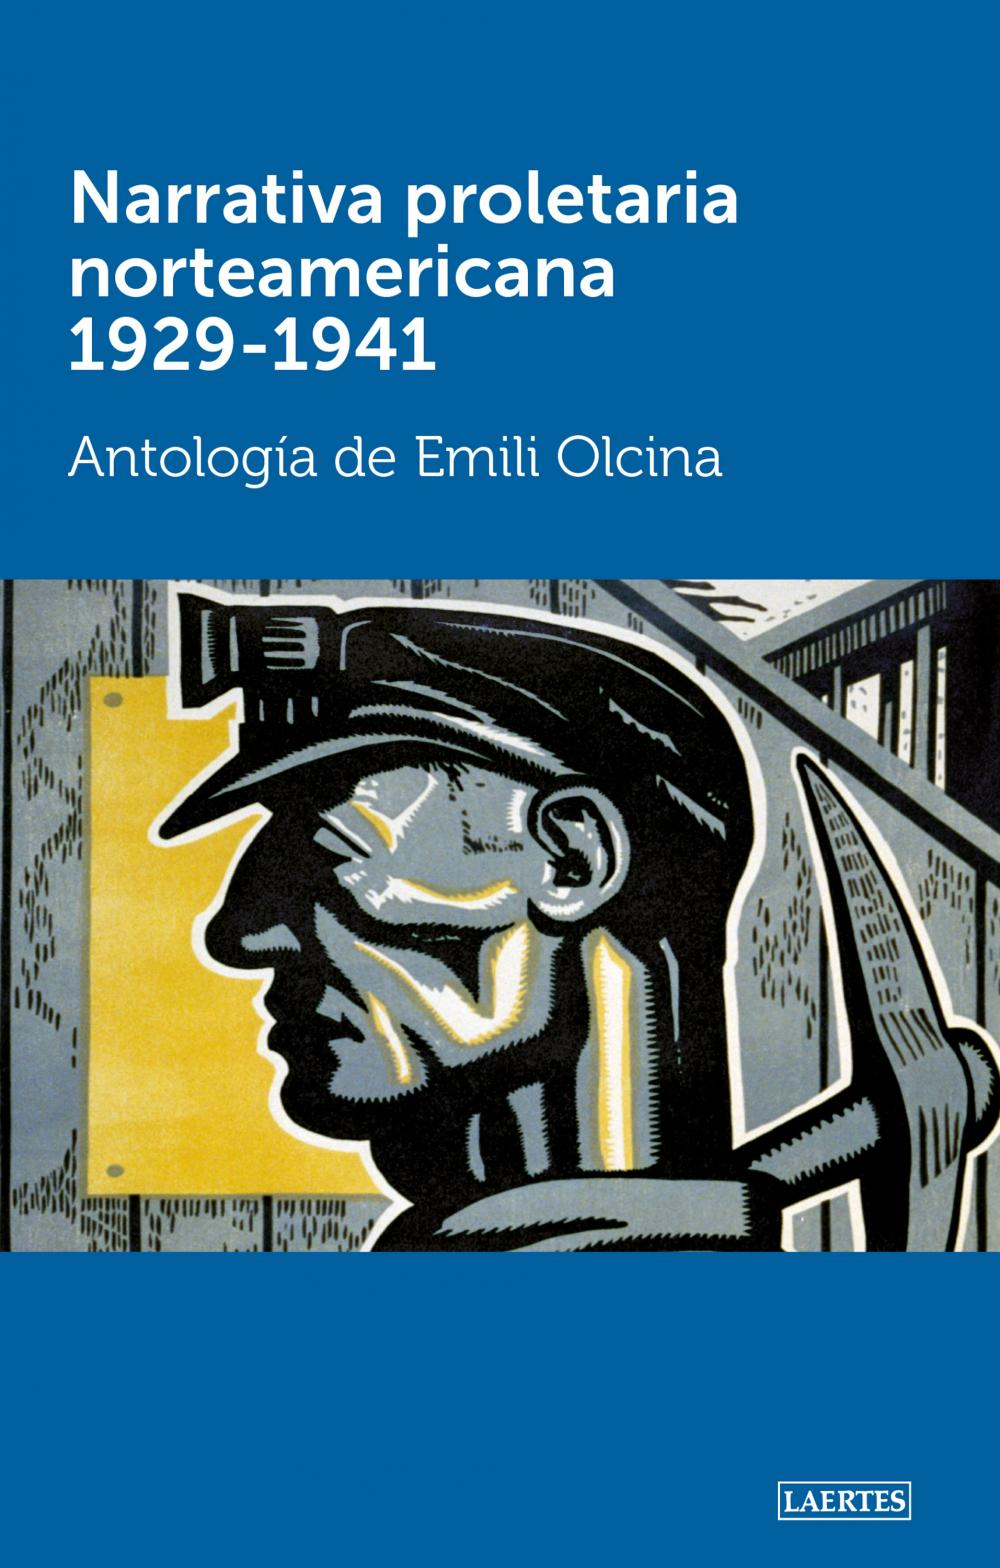 Narrativa proletaria norteamericana 1929-1941